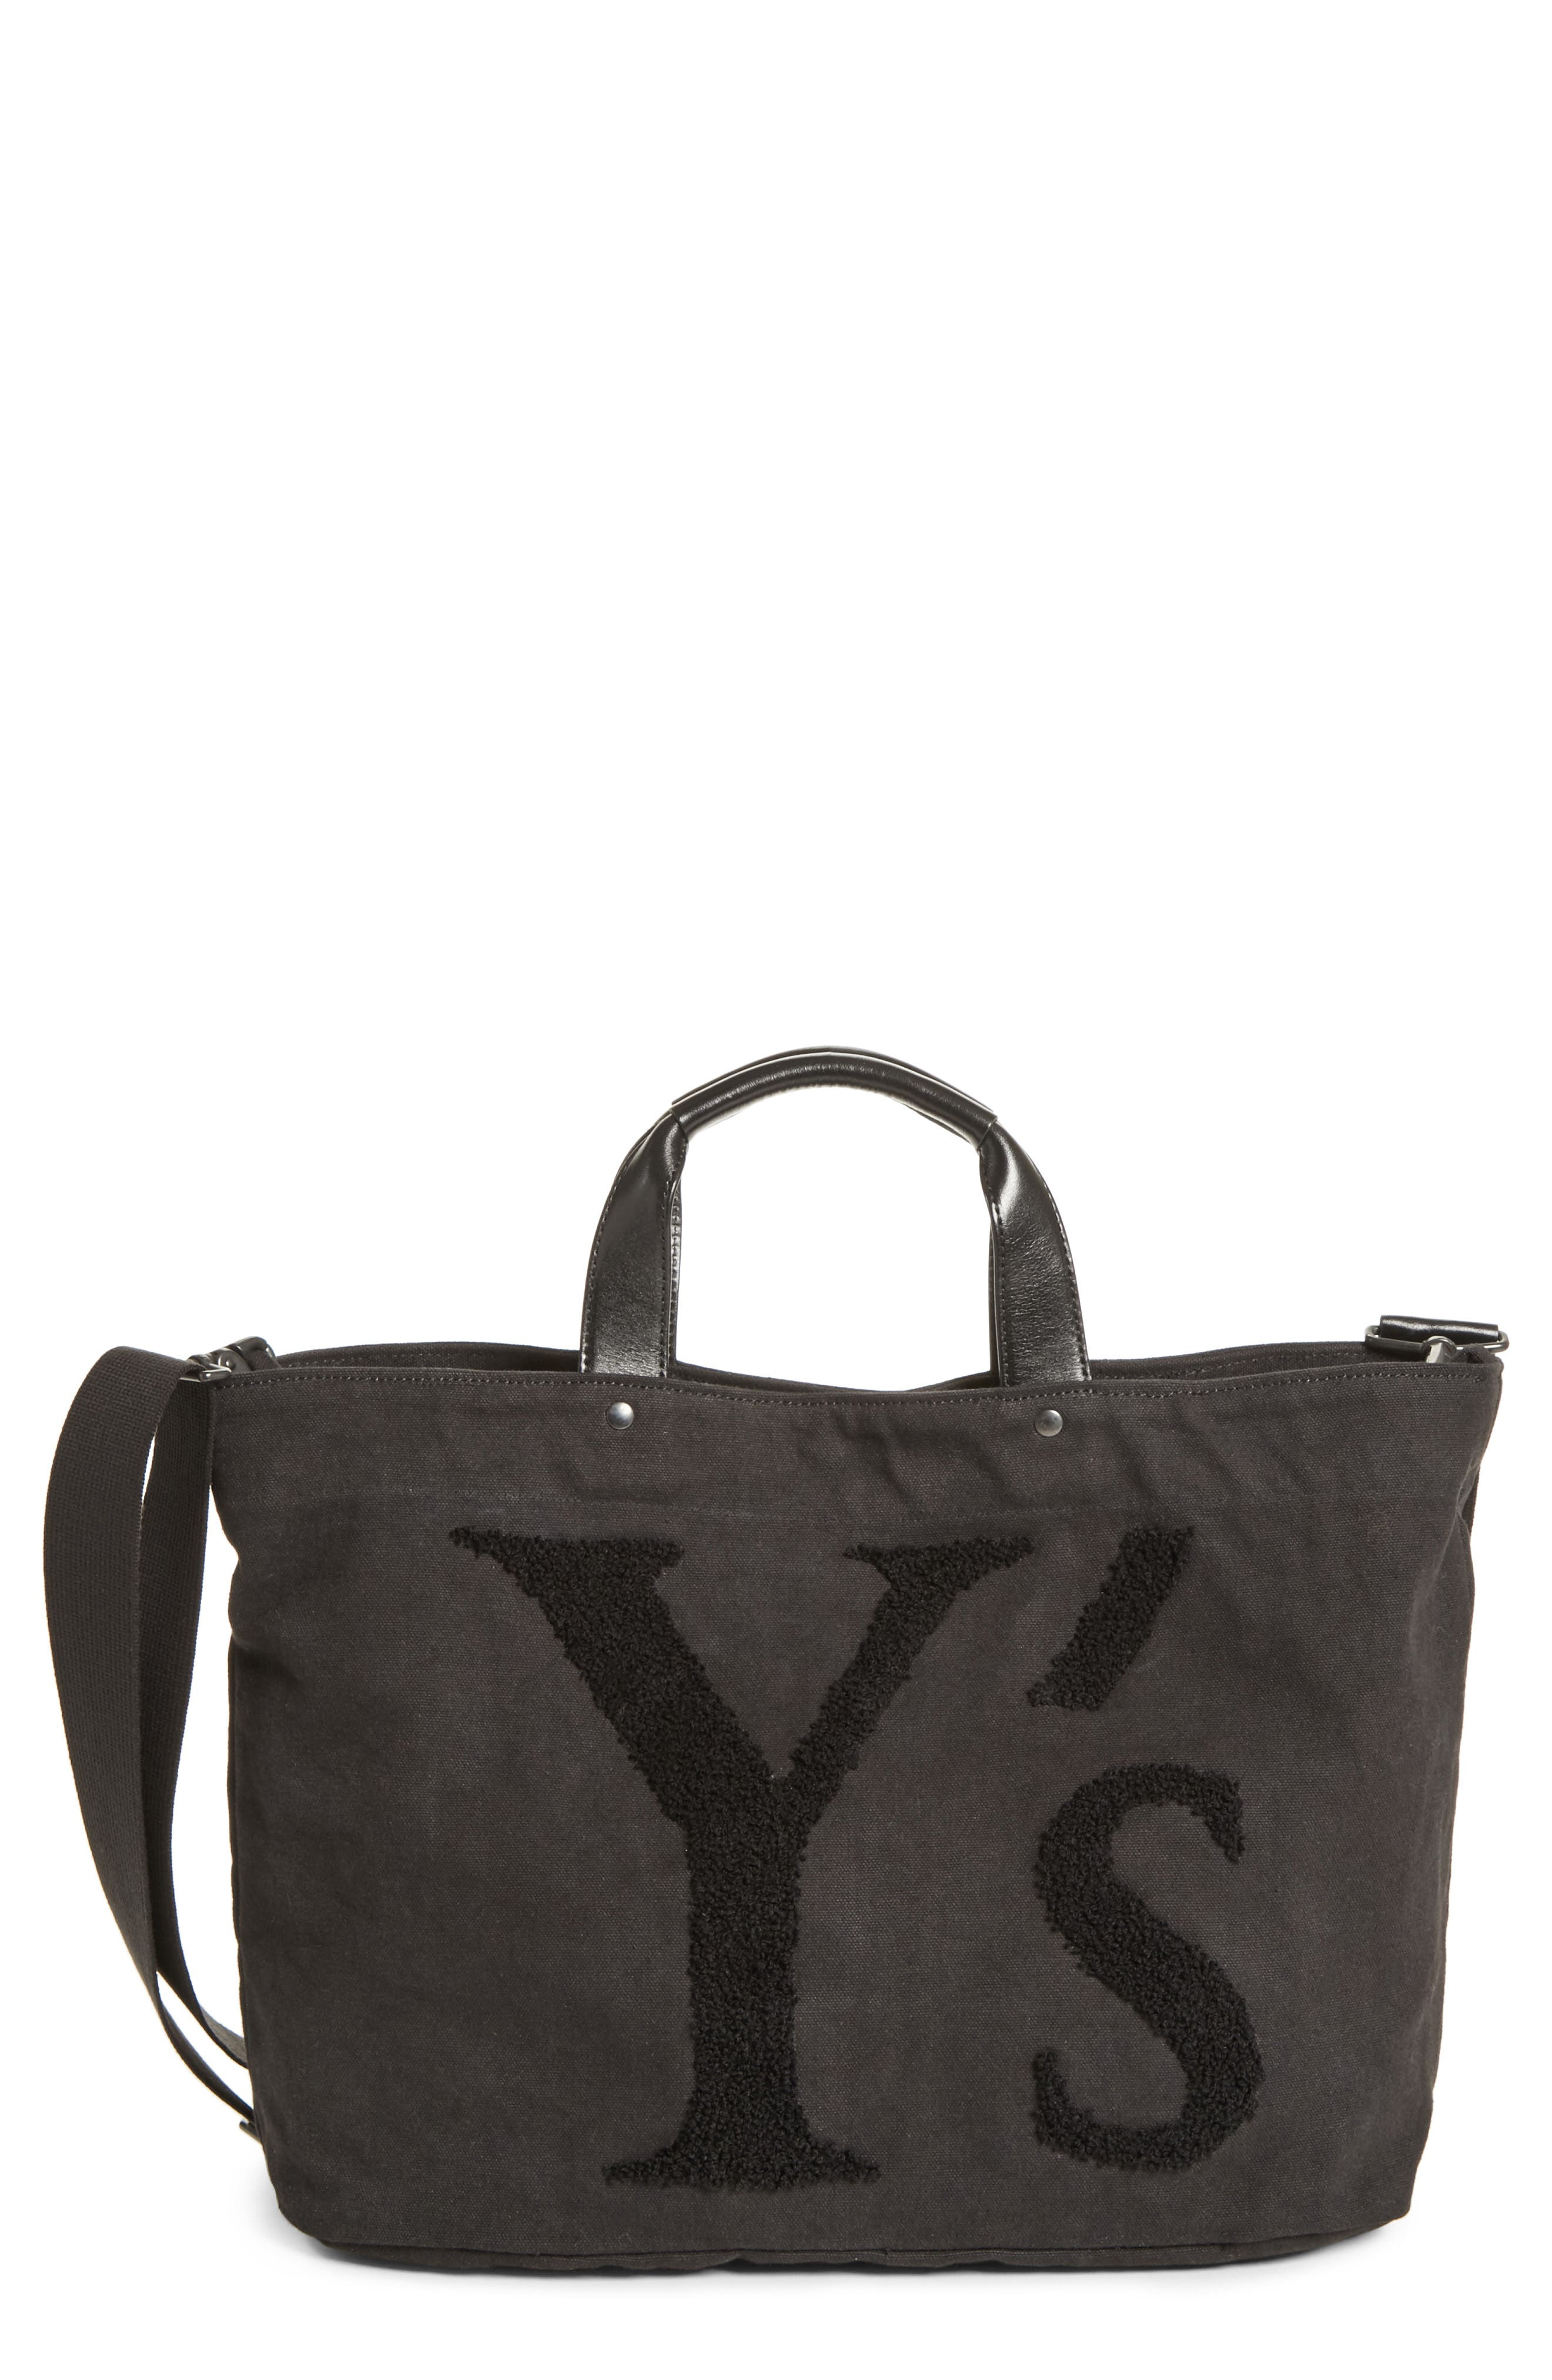 Ys by Yohji Yamamoto Embroidered Canvas Tote Bag,                             Main thumbnail 1, color,                             001